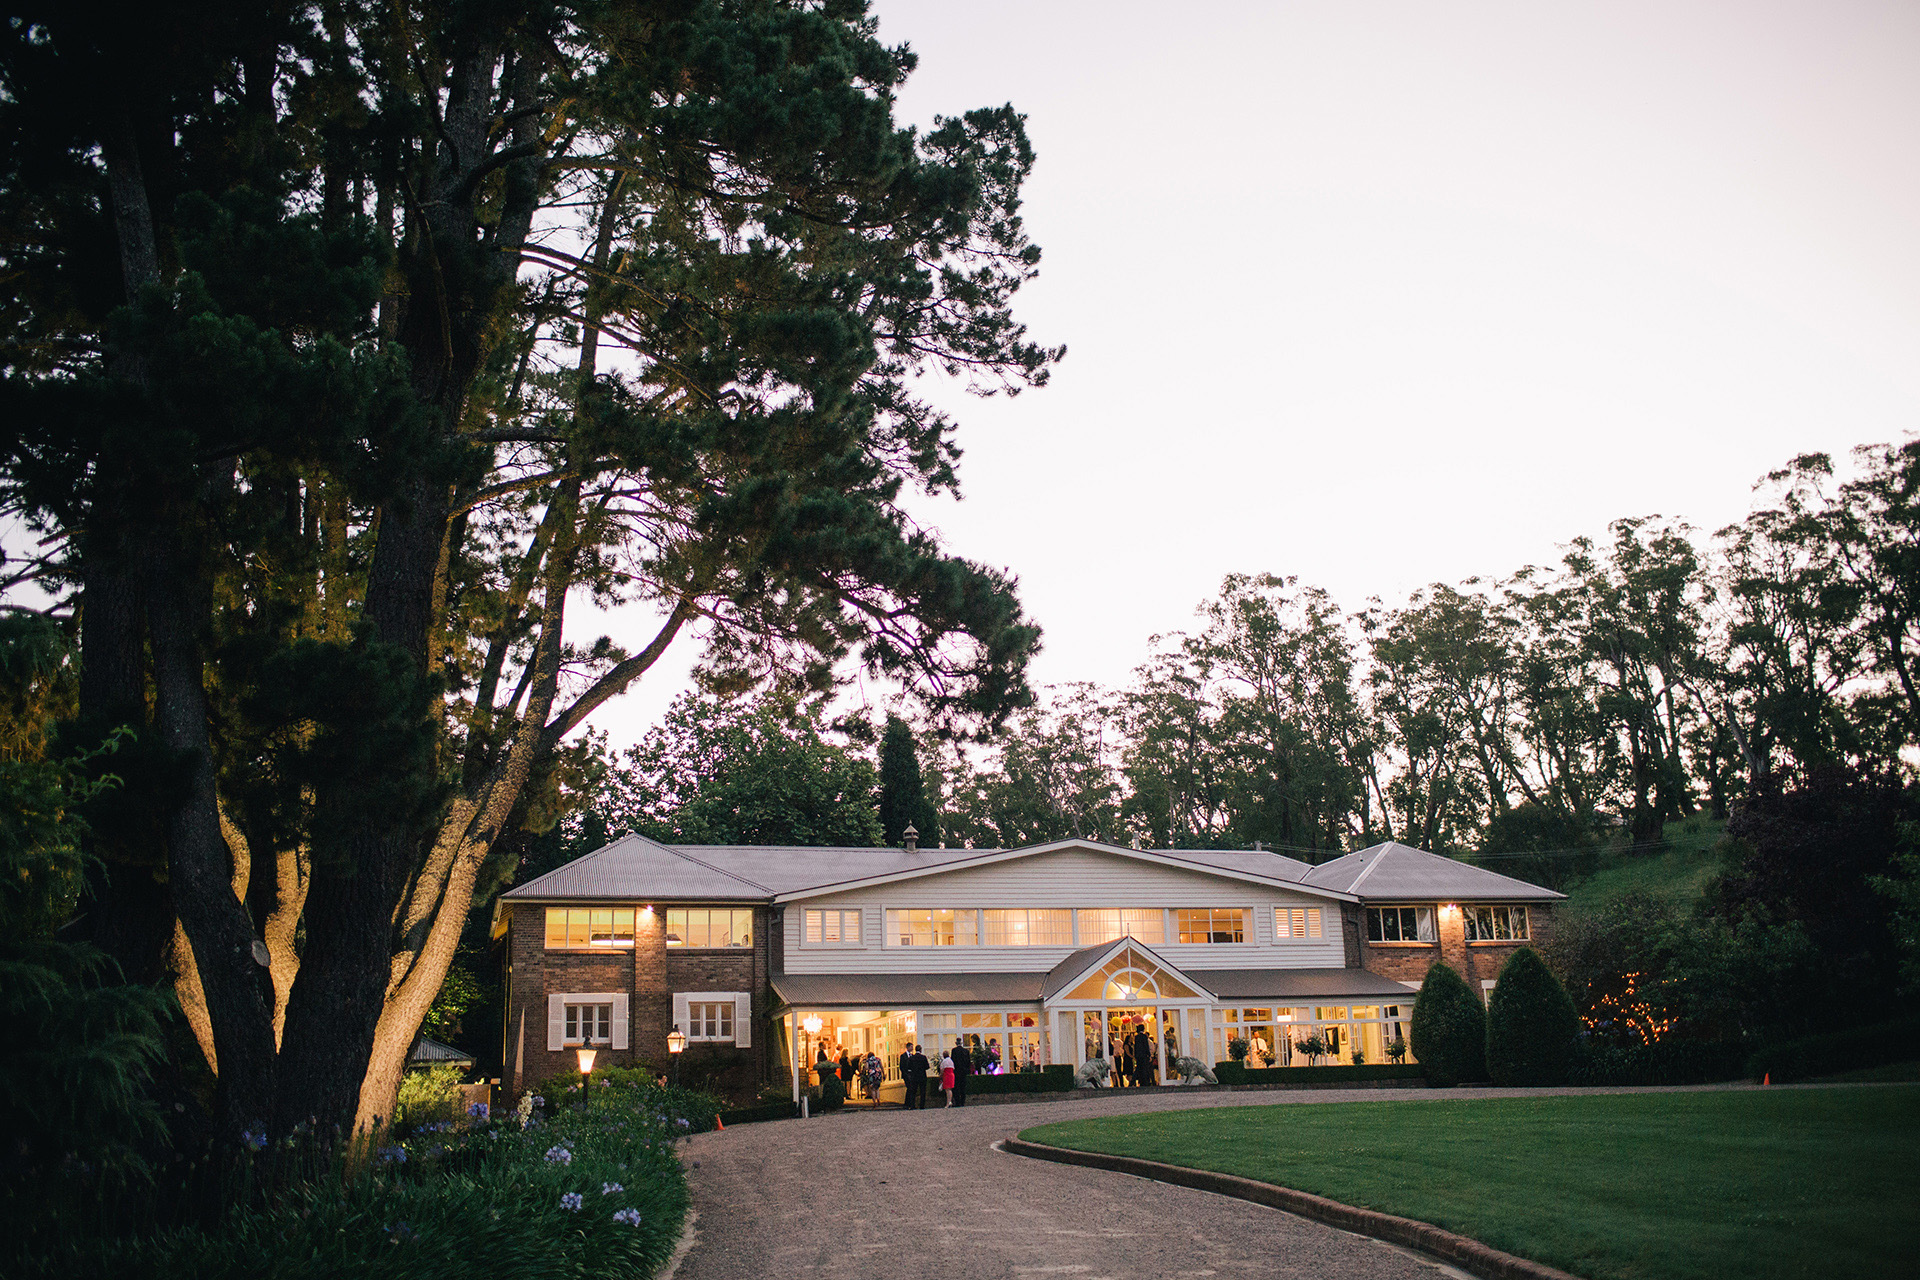 Hopewood House - Wedding Day Gallery - Lisa and Mark - At Dusk Photography - The Pavilion Drive and Austins Lawn.jpeg